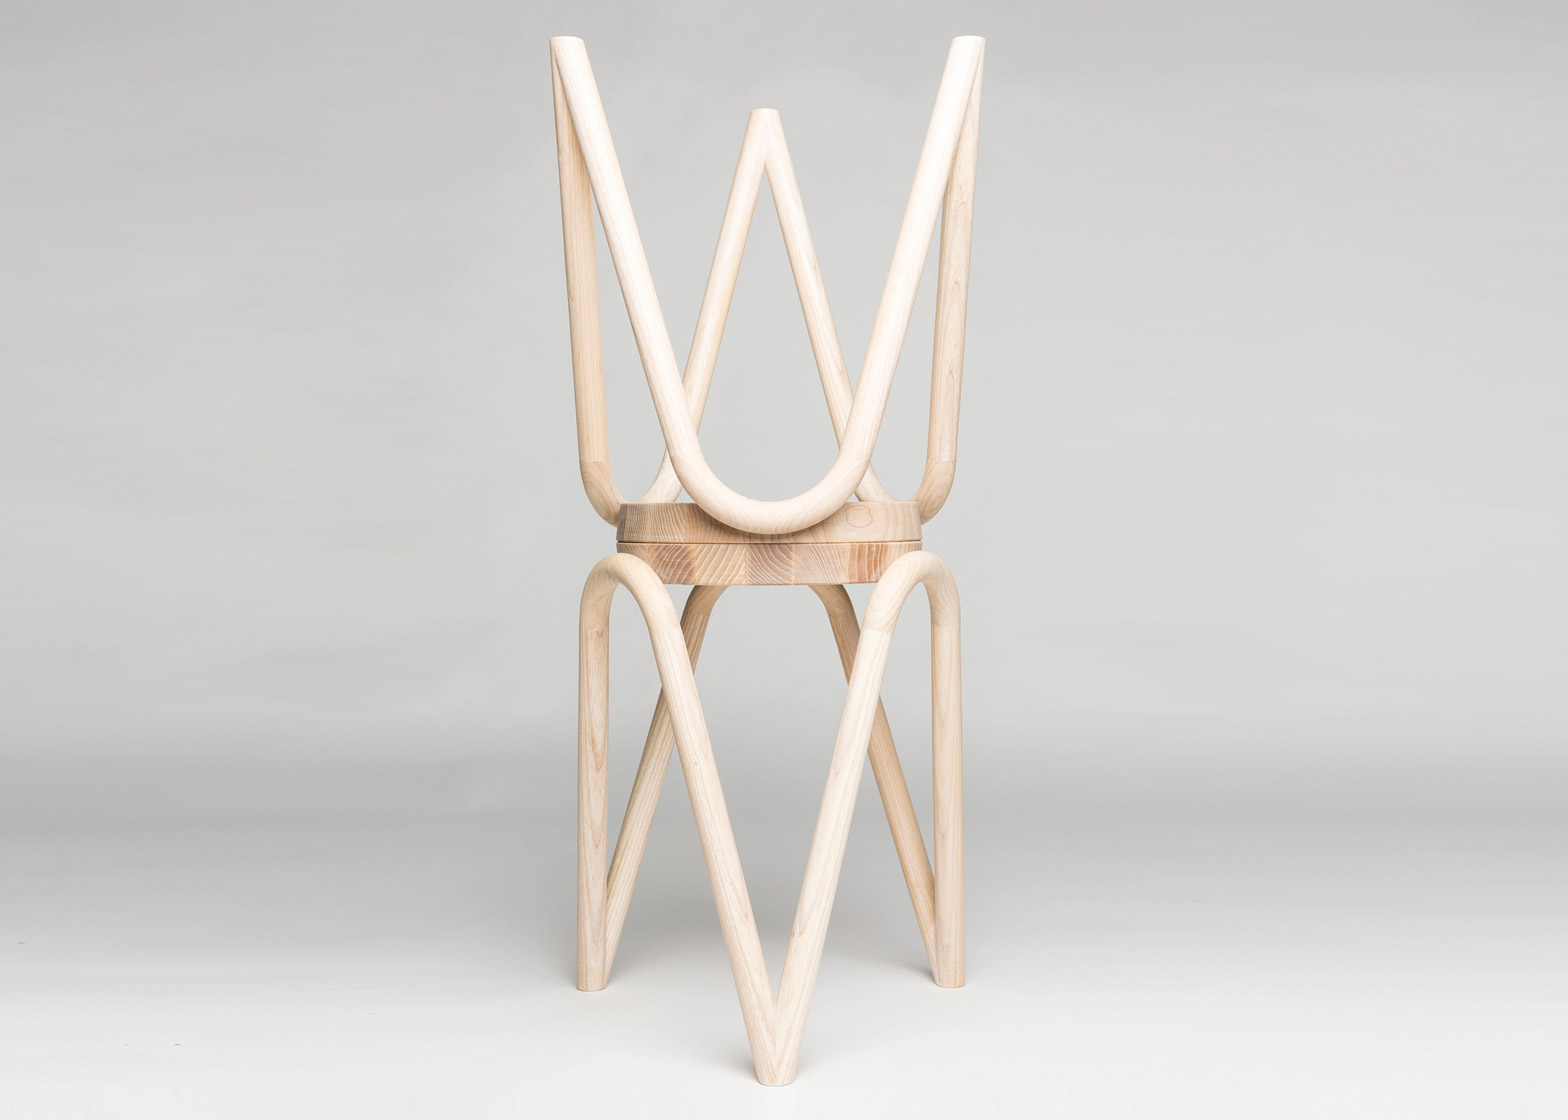 VAVA Stool by Kristine Five Melvaer